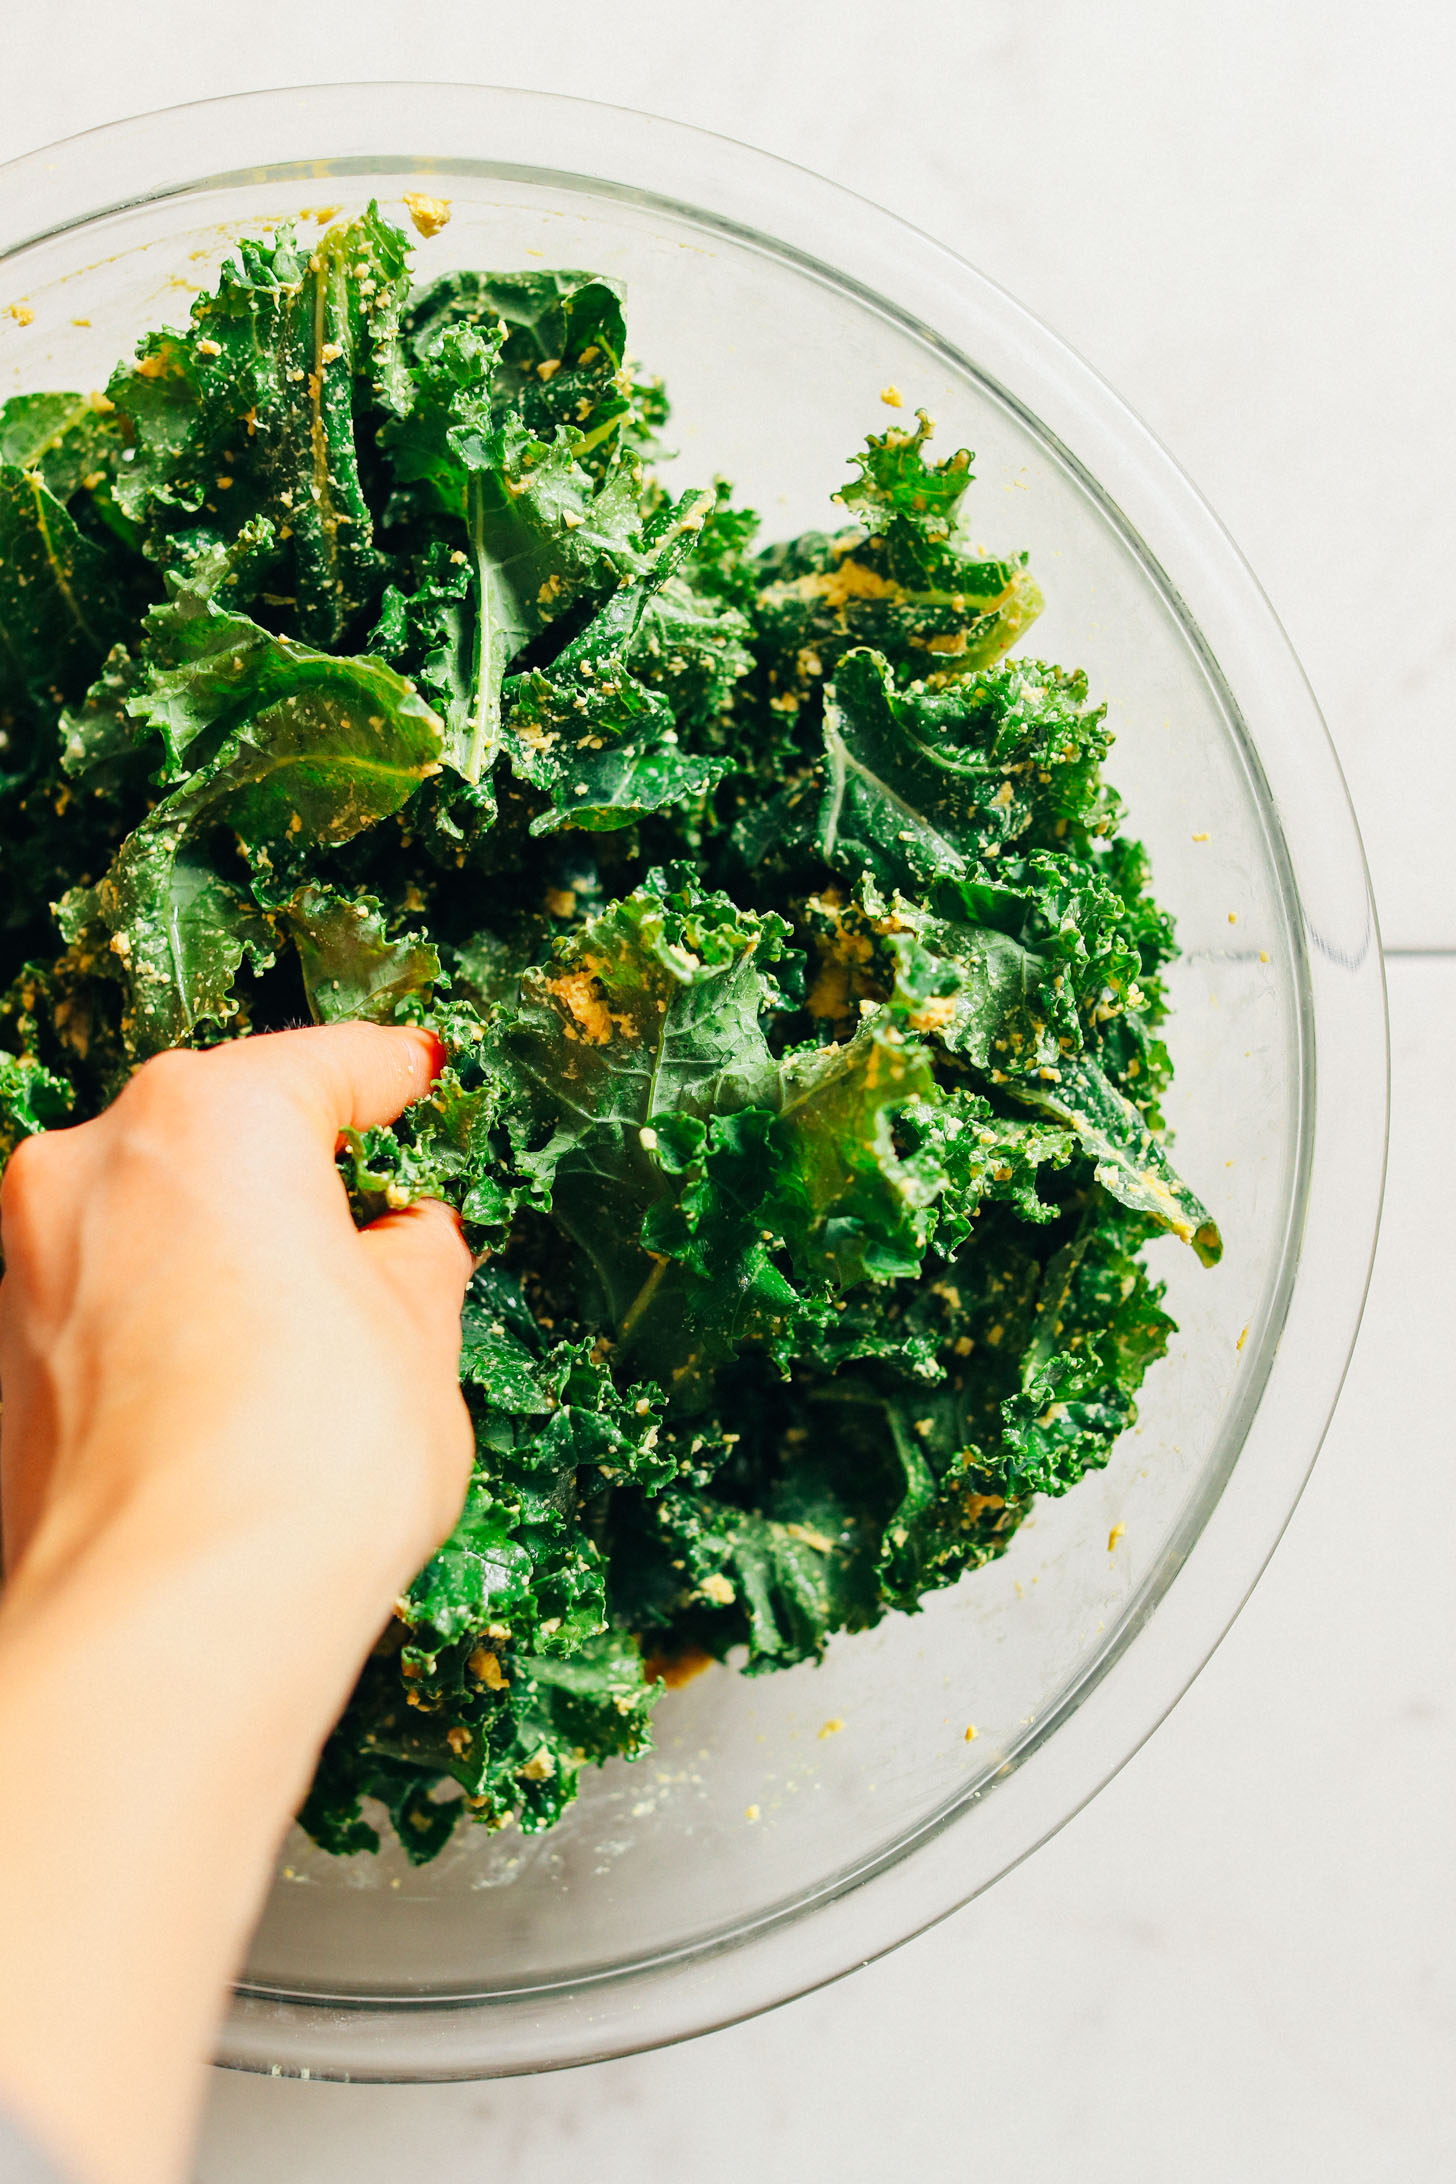 Using hands to toss kale leaves evenly with Sunflower Seed Cheeze